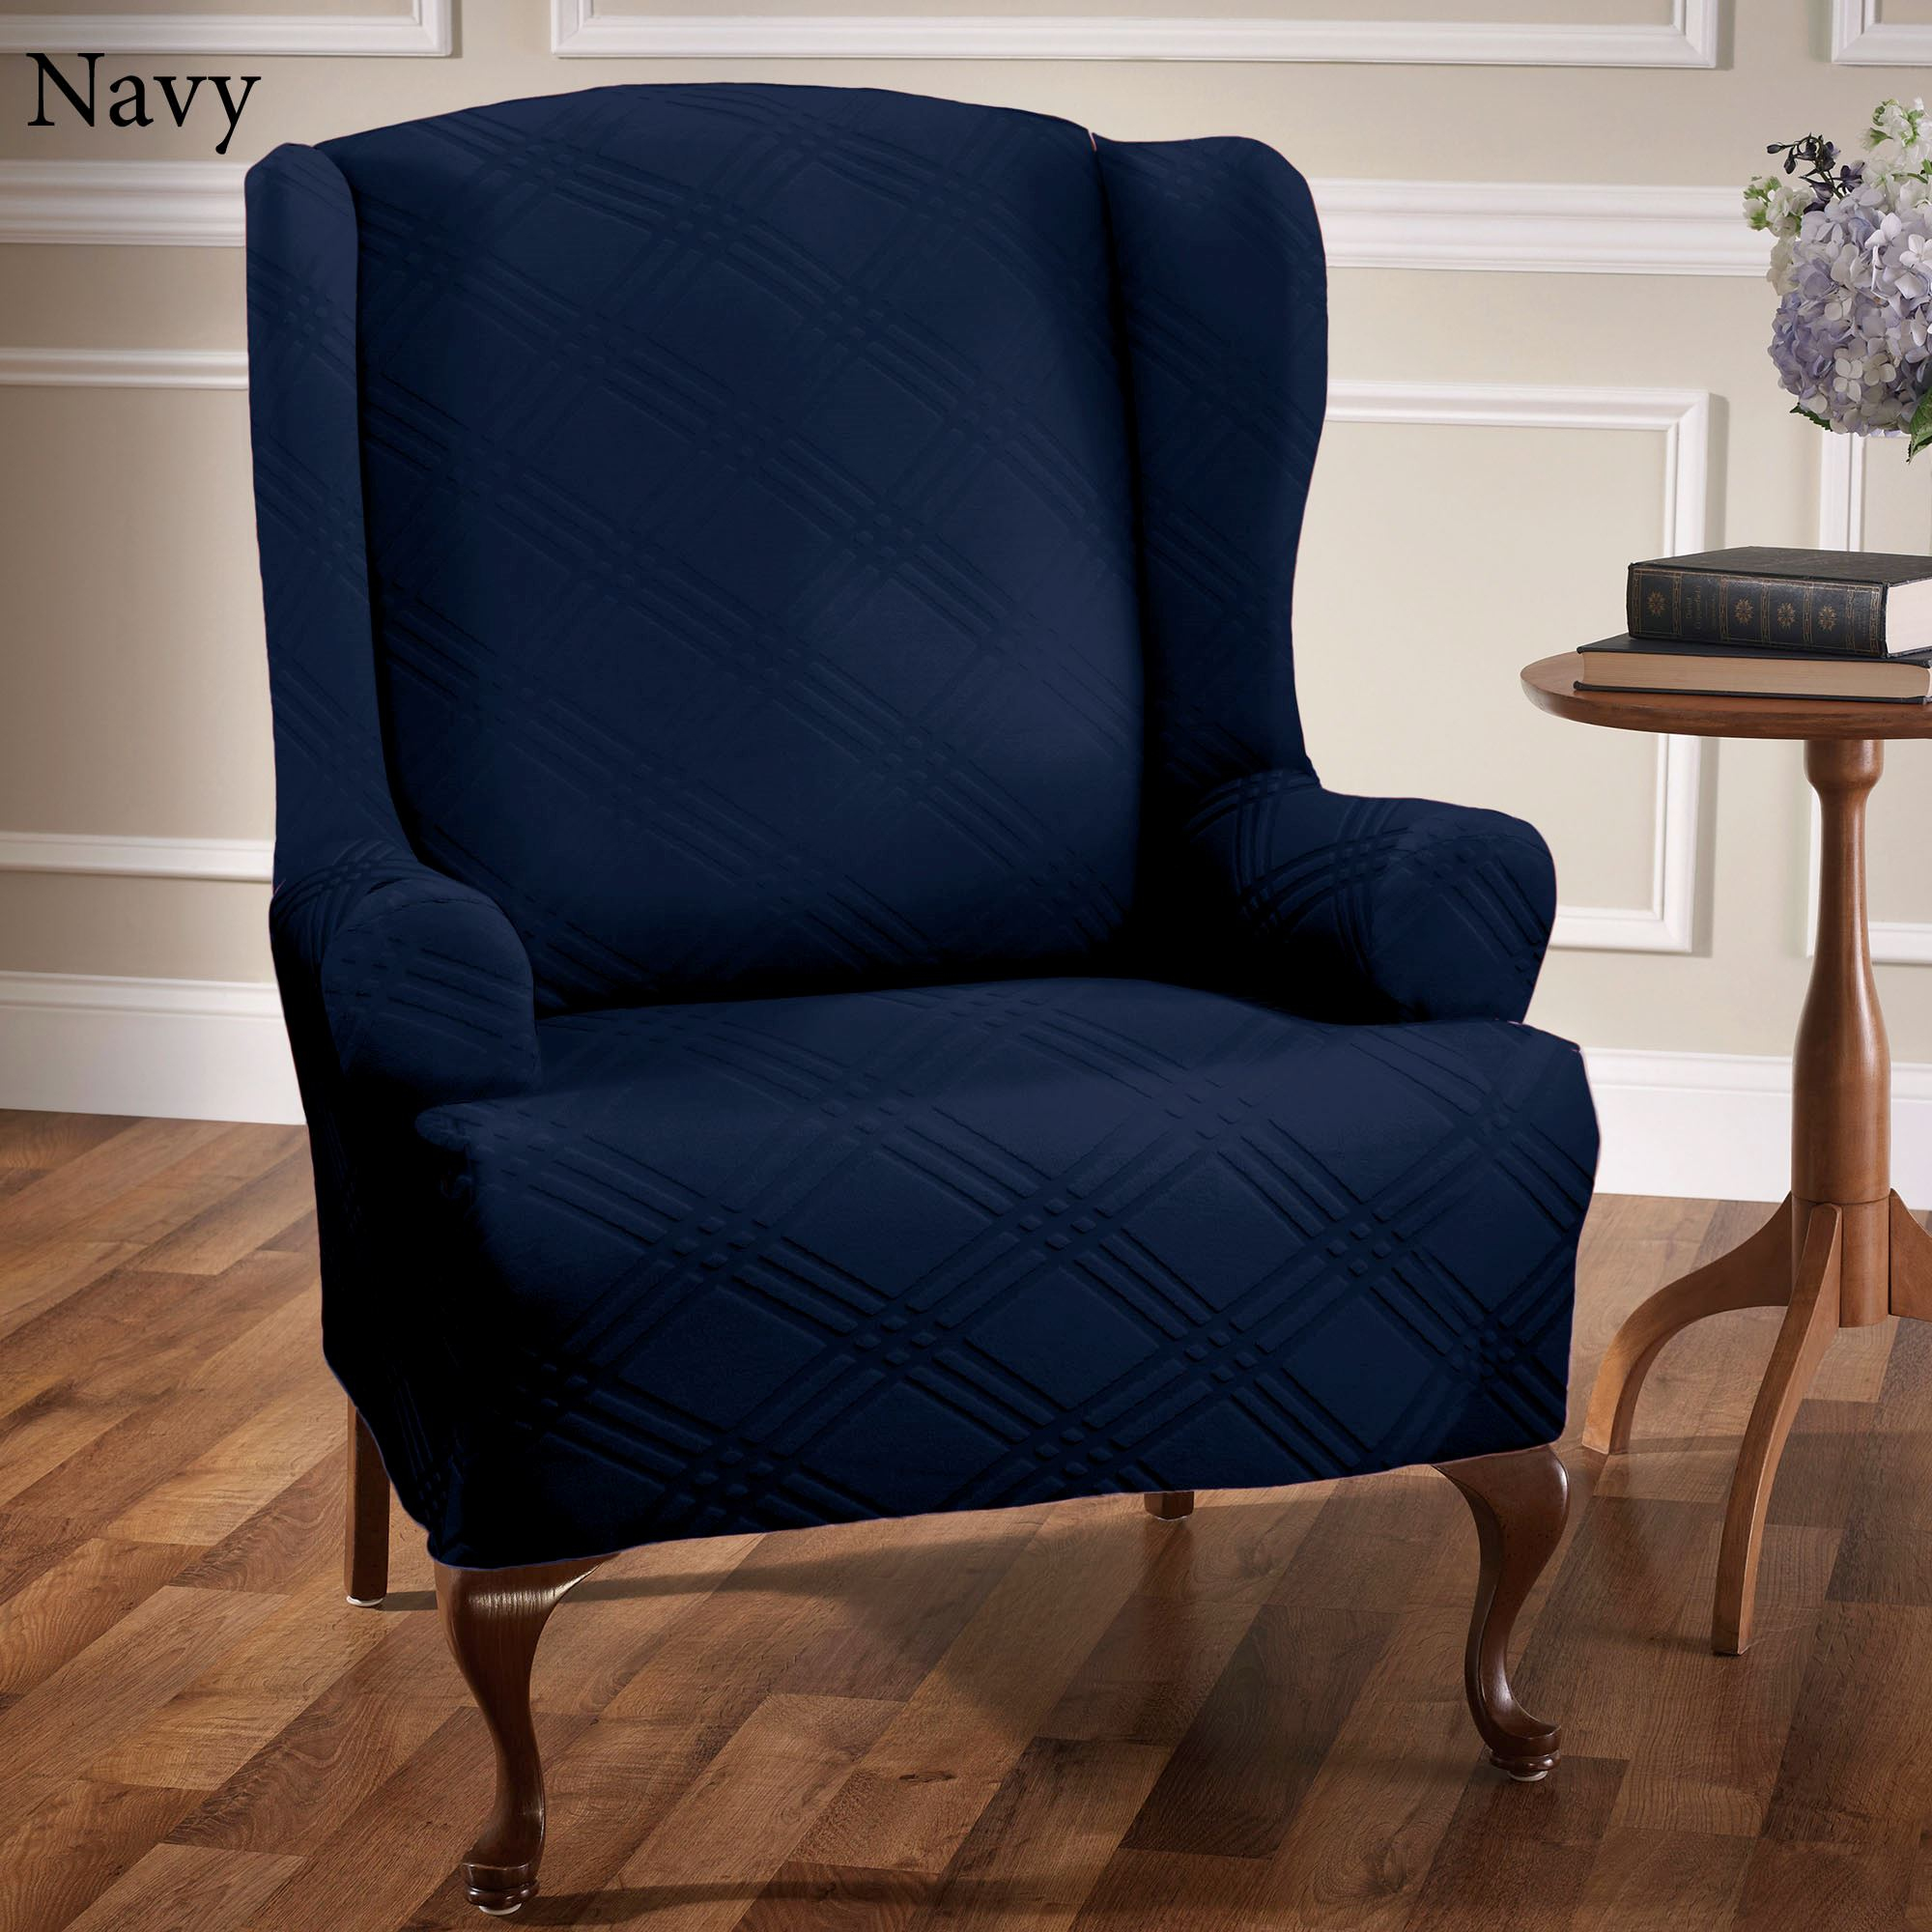 accent chair excellent grey tufted linen wingback for warm brilliant dark blue bedroom pattern with relaxed small oak wood side table furniture varnished wooden floor full size